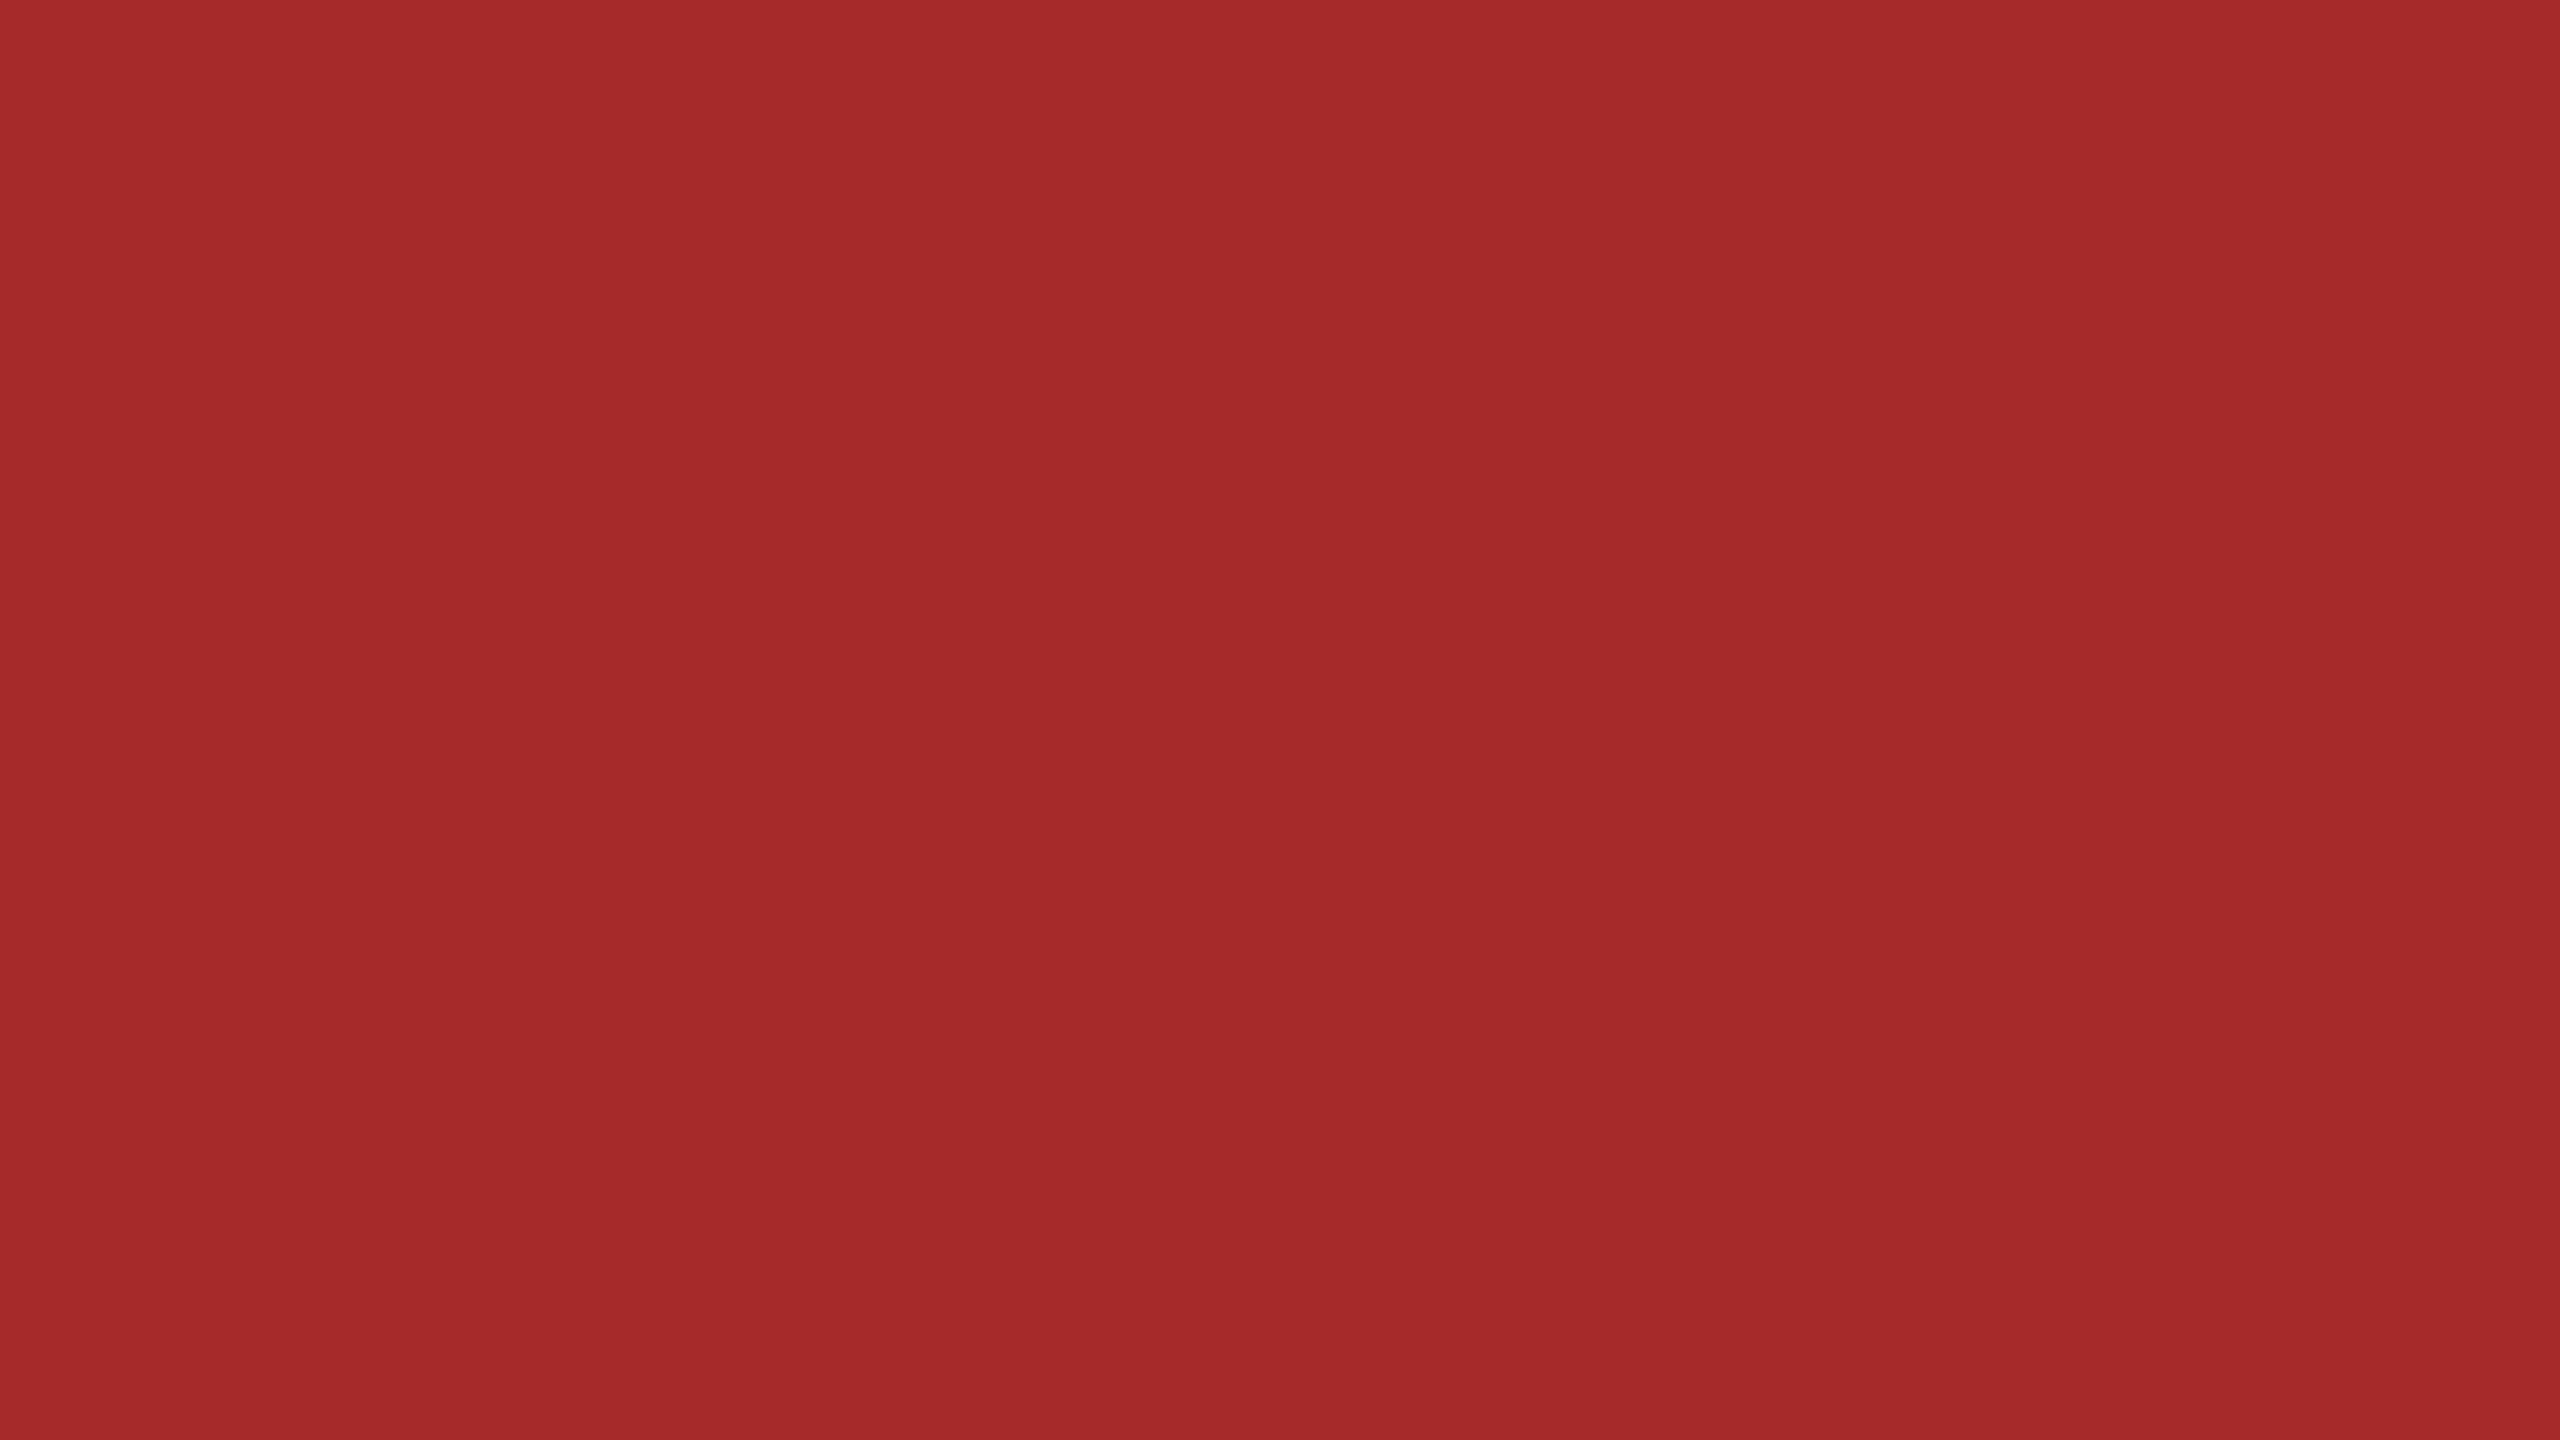 2560x1440 Redbrown Solid Color Background